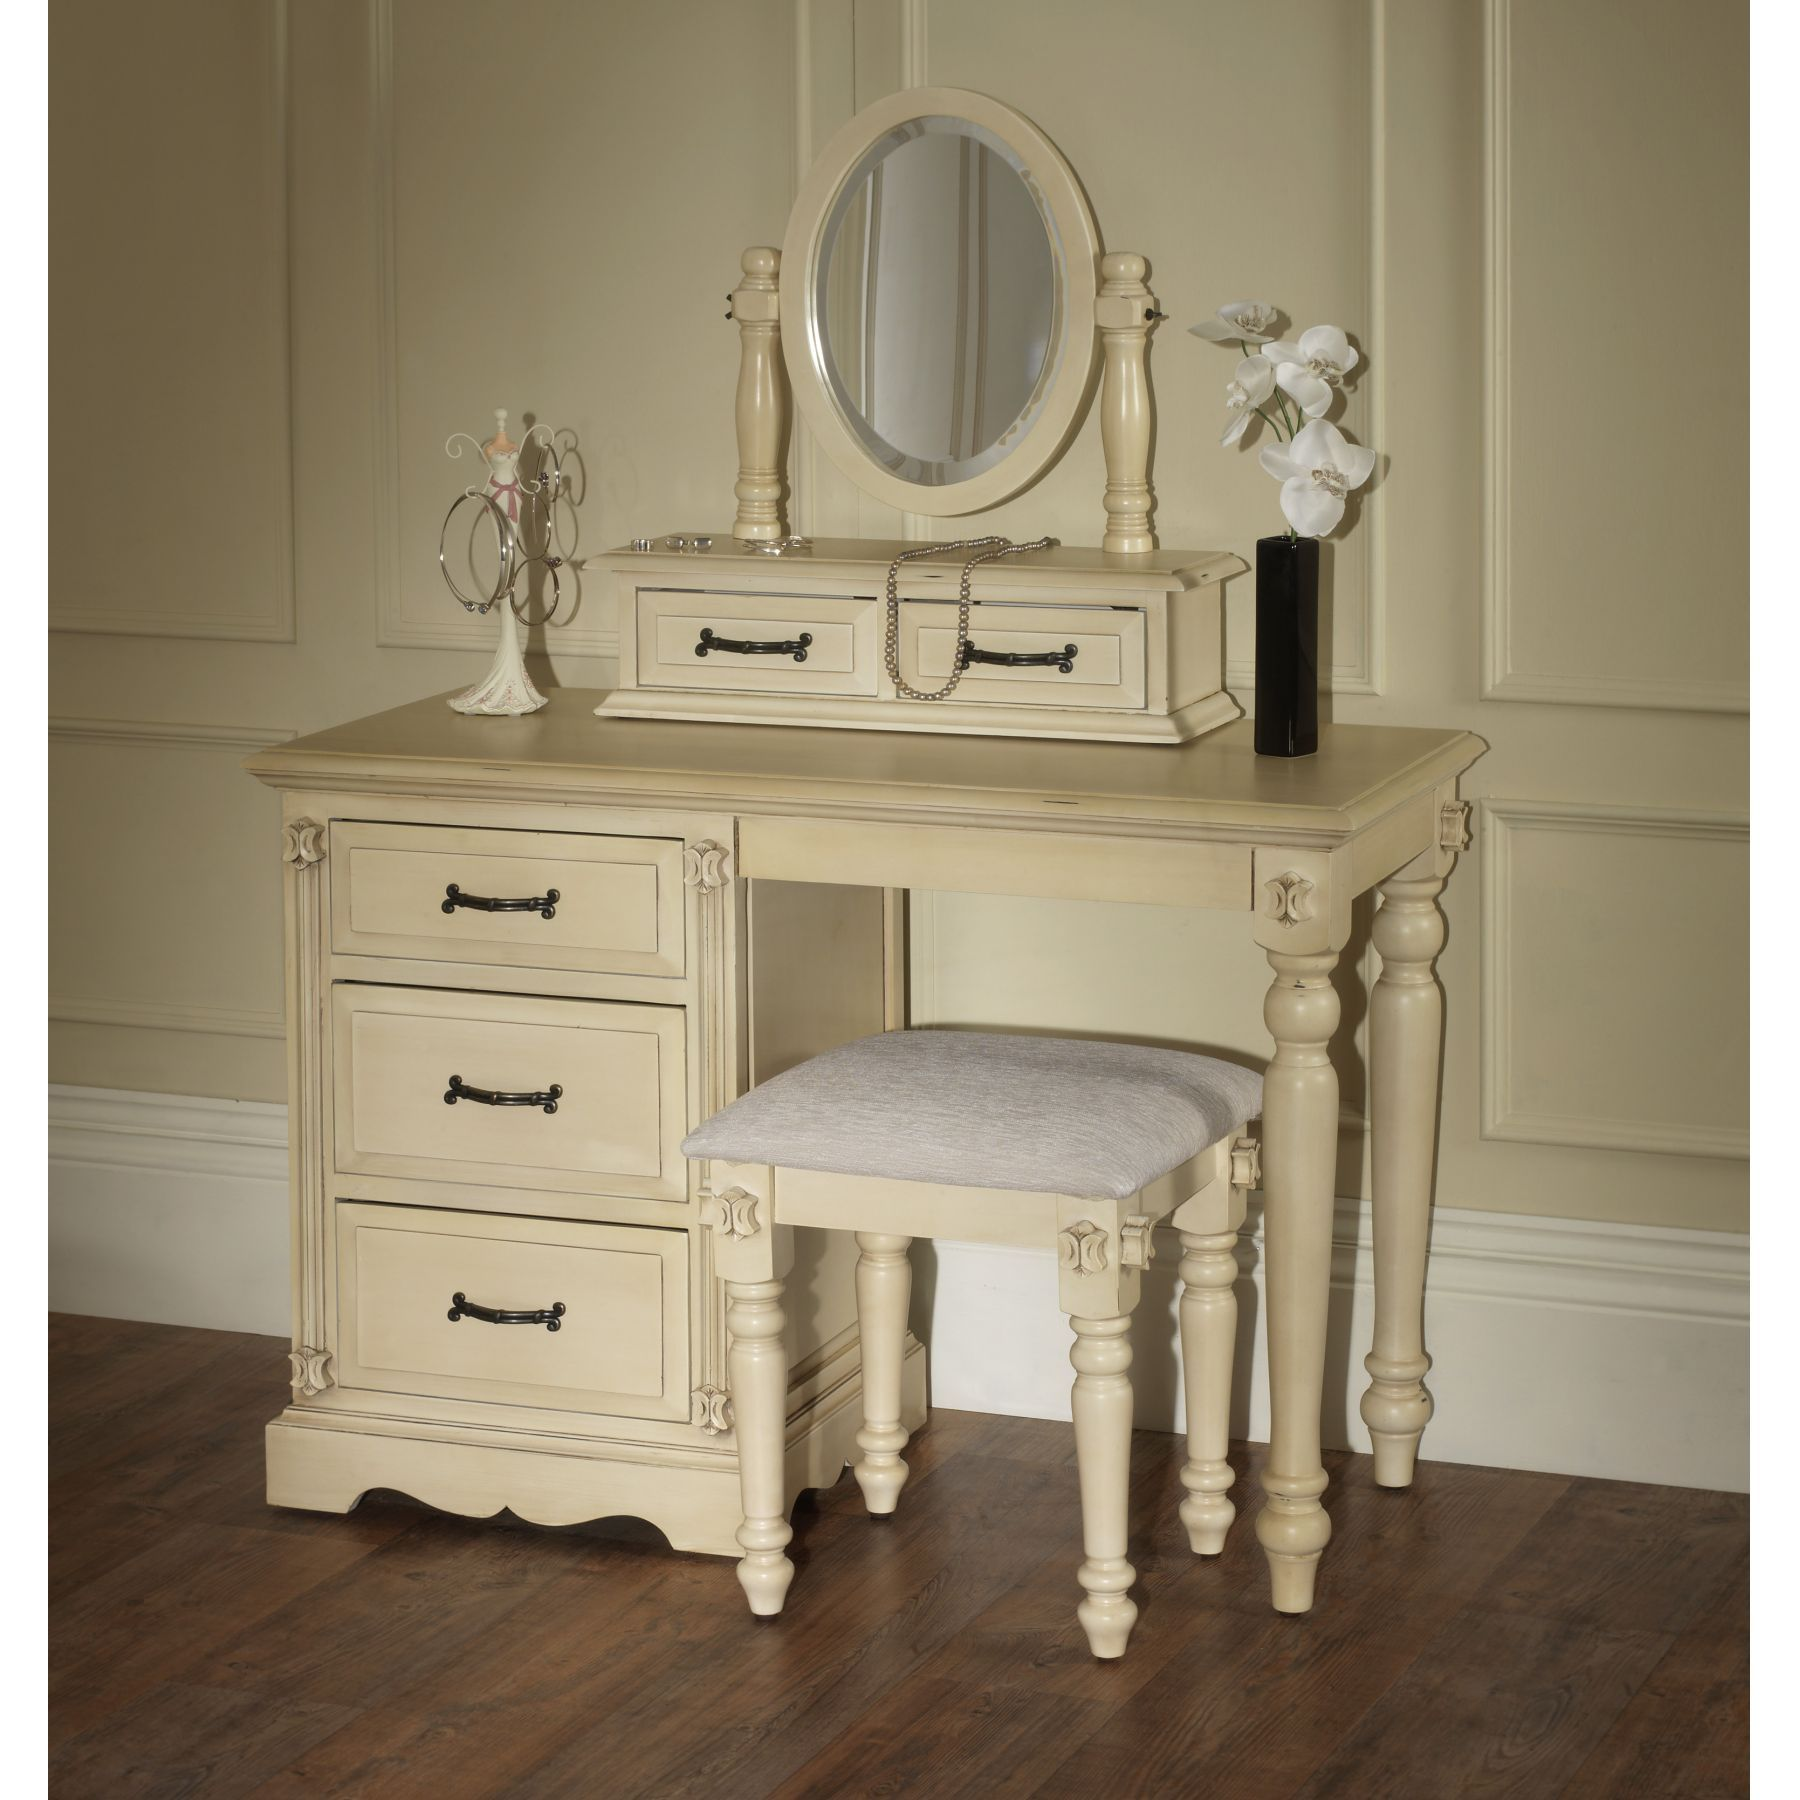 French victorian bedroom furniture - Victorian Bedroom